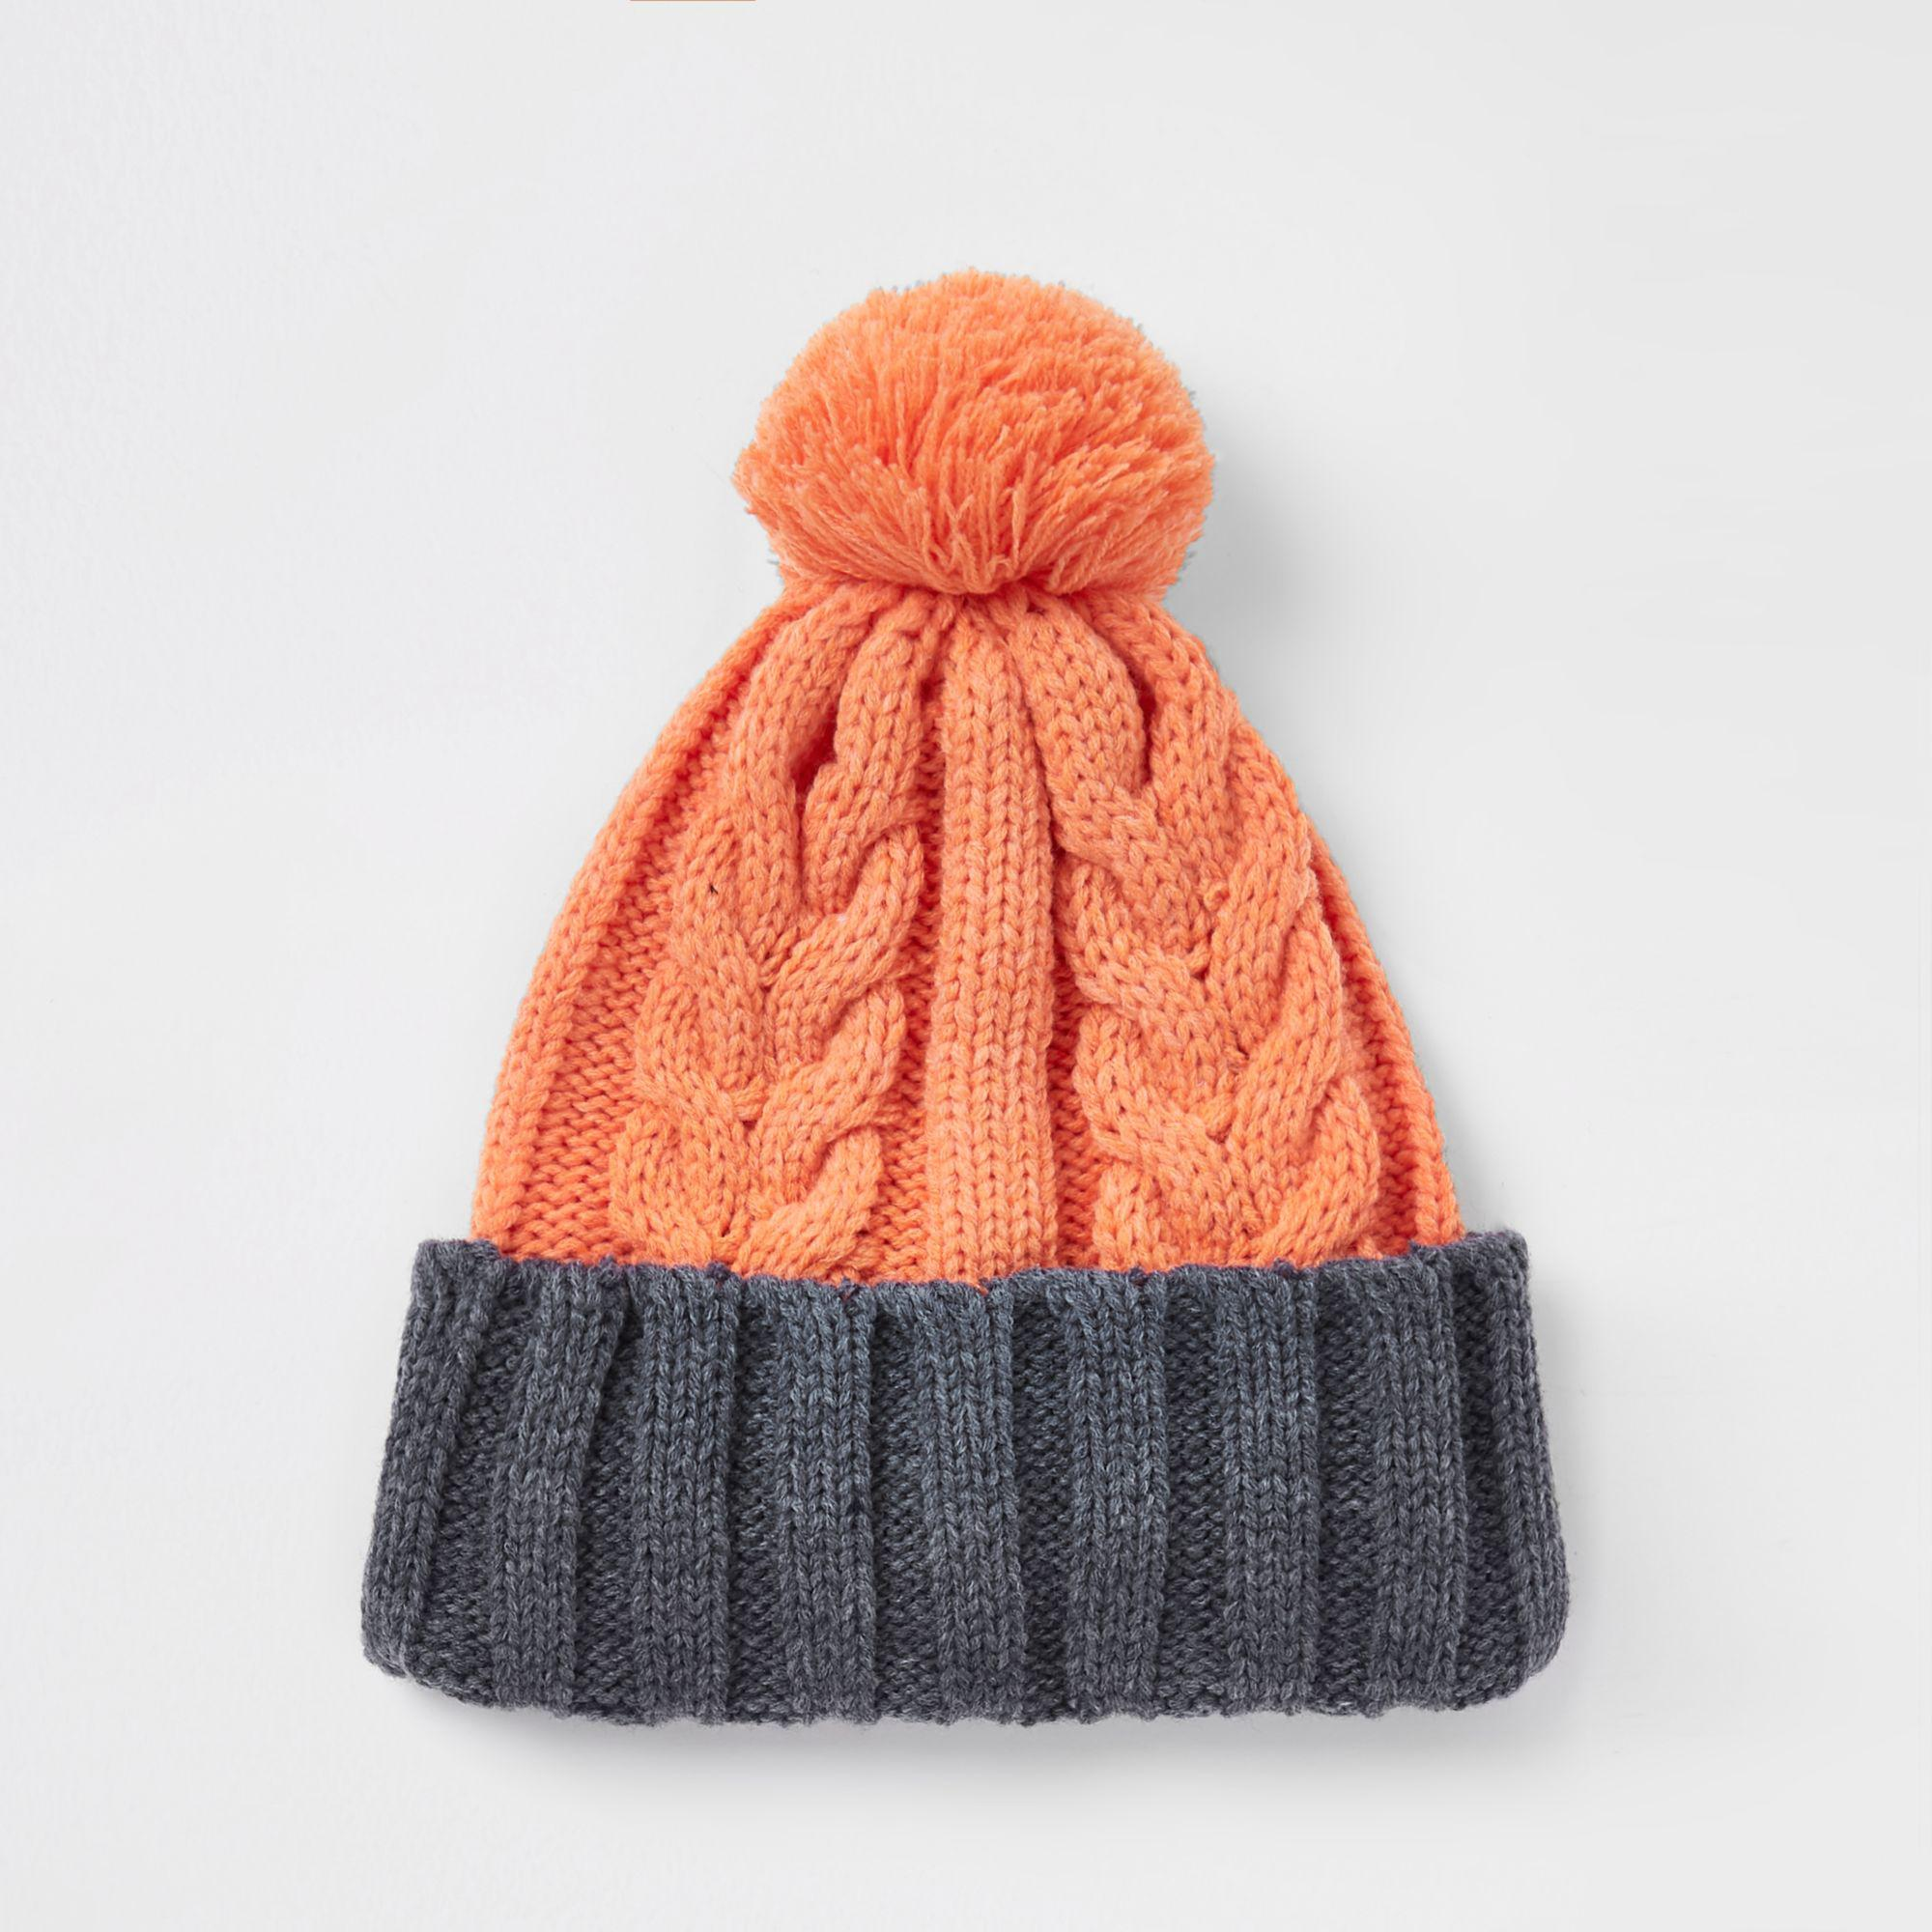 c946c907918 River Island Cable Knit Bobble Beanie Hat in Orange for Men - Lyst